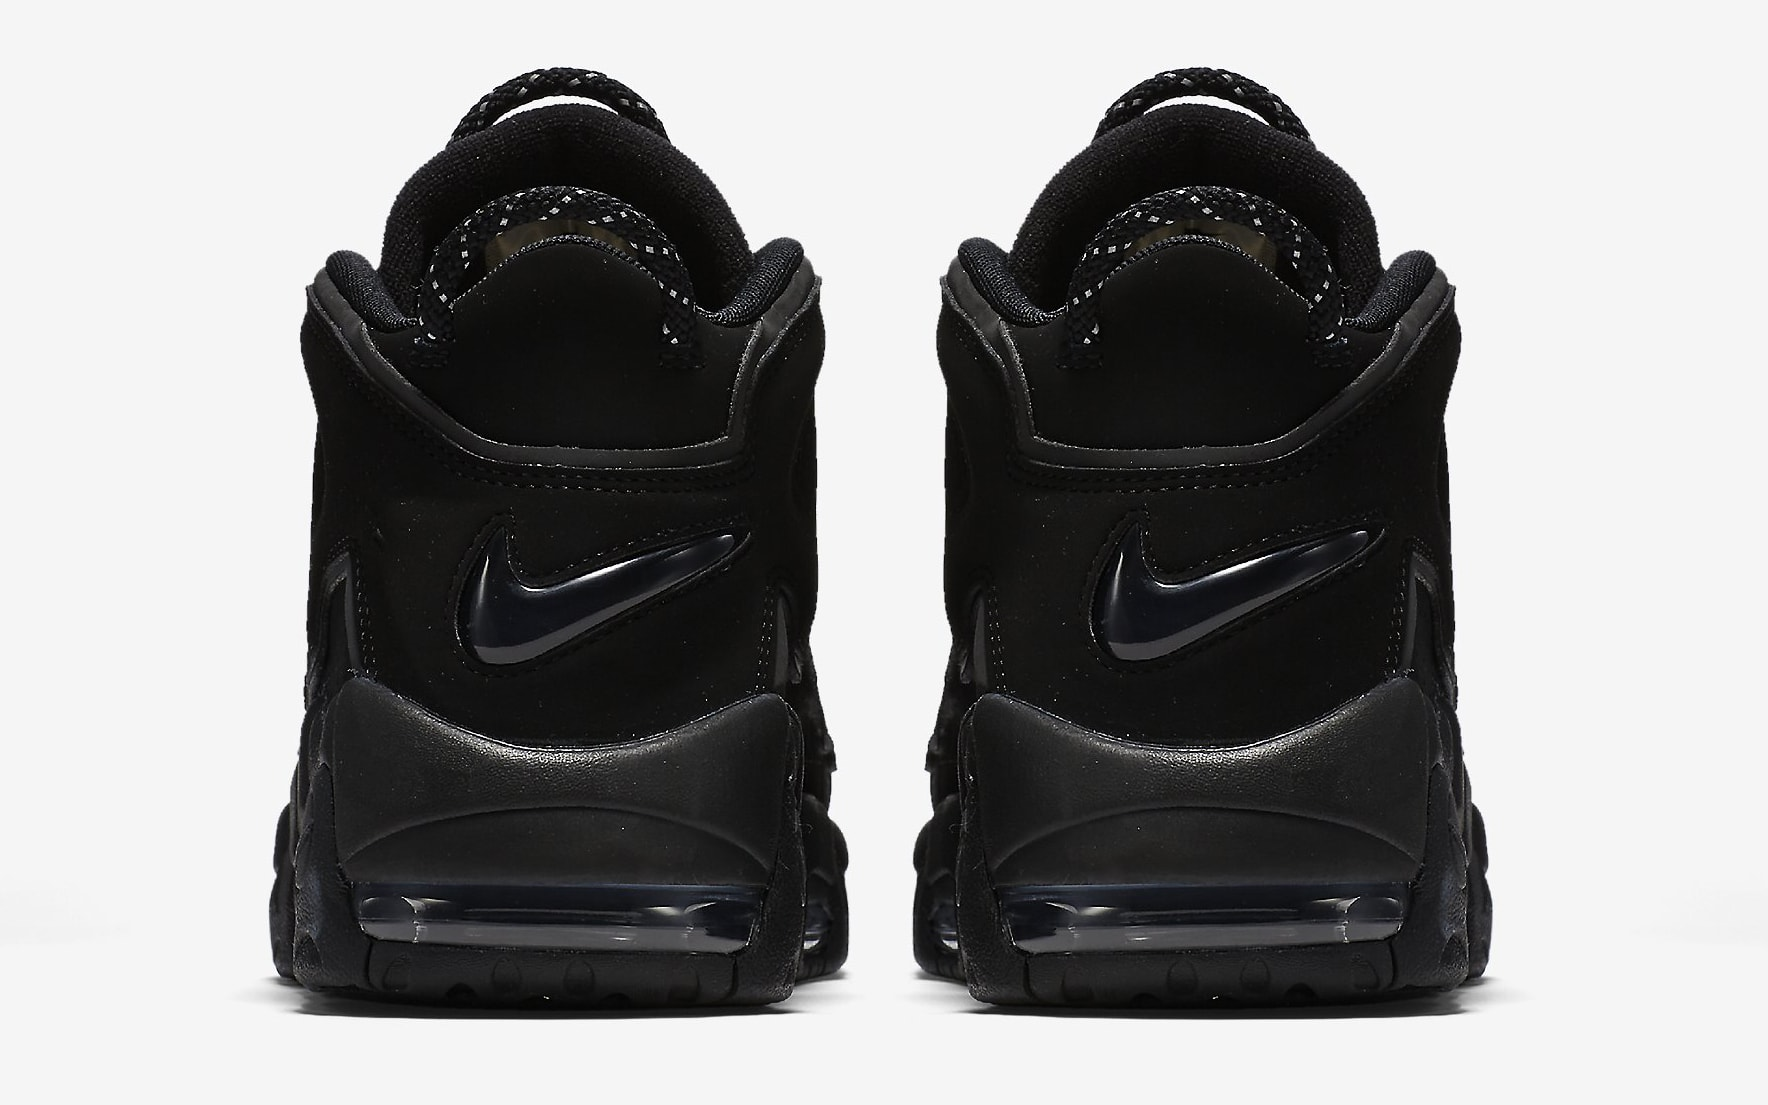 Nike Air More Uptempo Black Reflective 414962-004 Heel